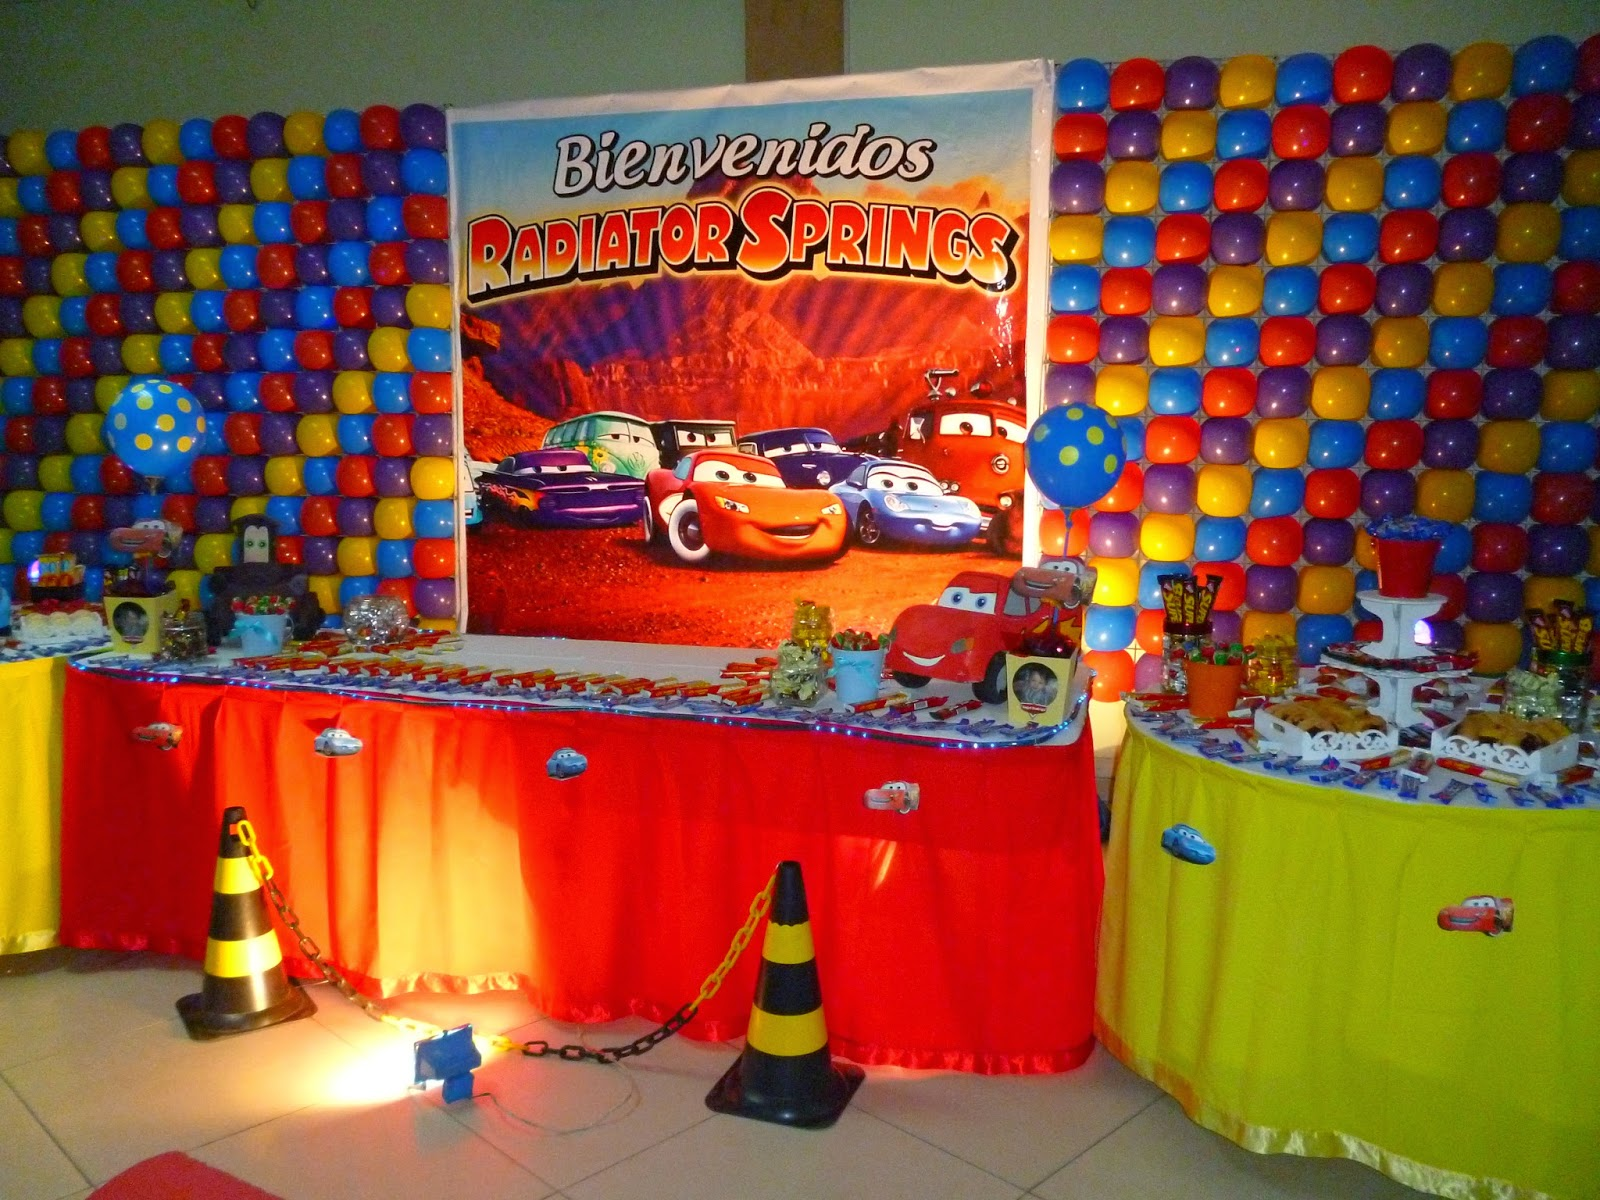 Fiestas personalizadas ideas de decoraci n de fiesta for Decoracion para fotos